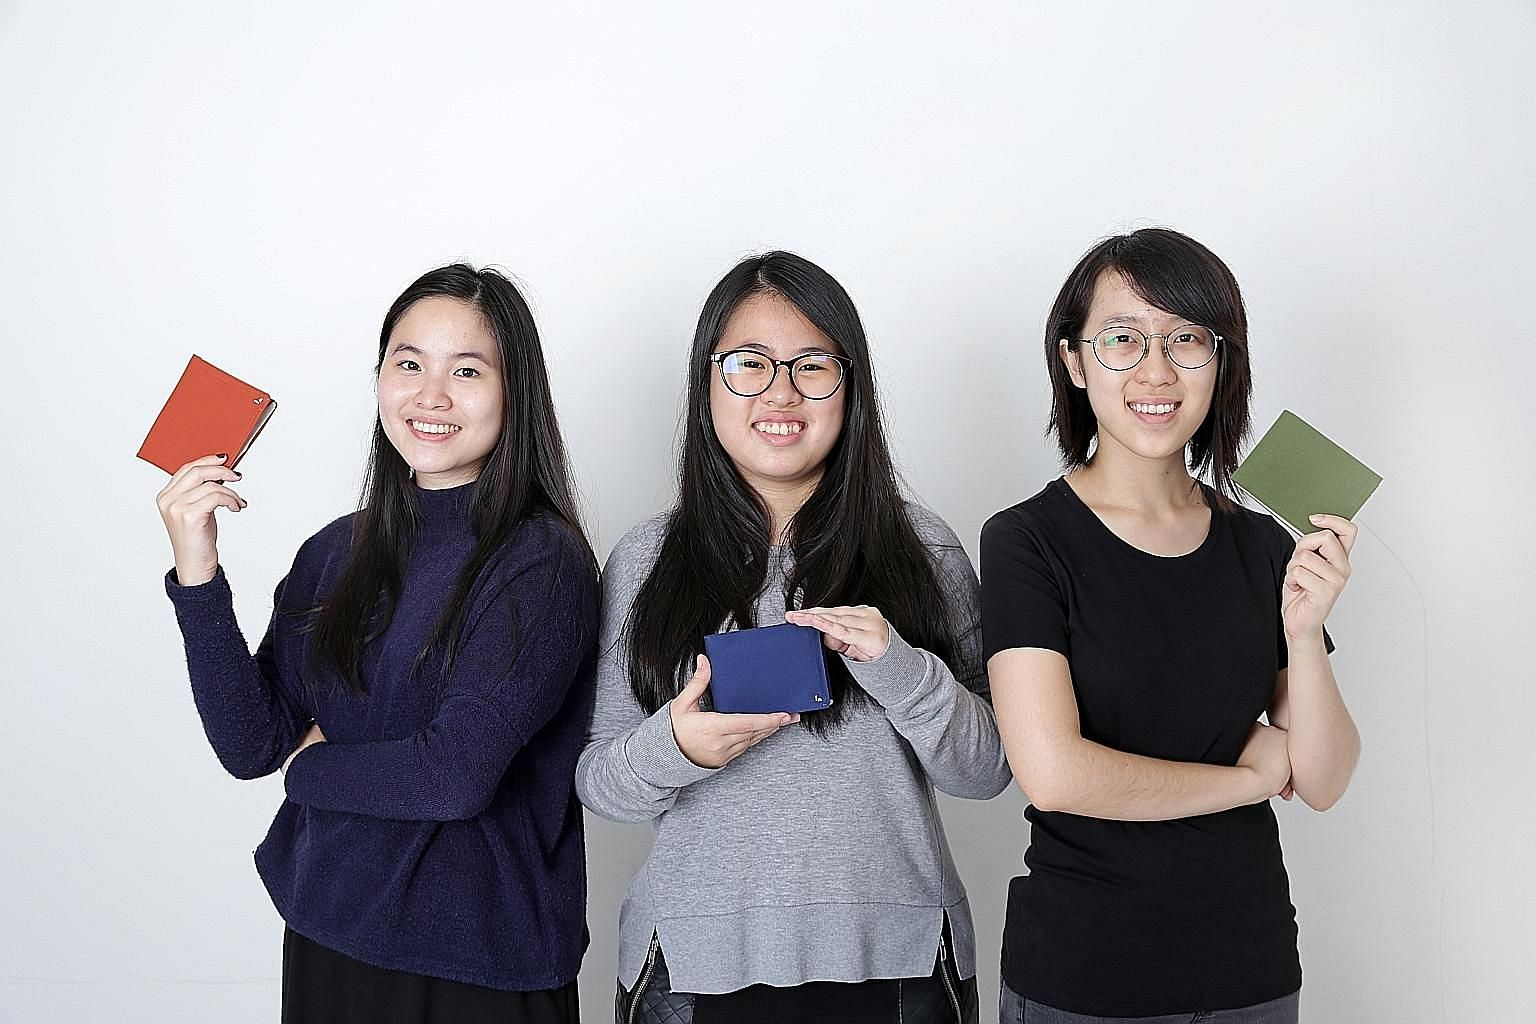 Last year, National University of Singapore industrial design students (from far left) Lim Li Xue, Ng Ai Ling and Cheryl Ho created a wallet called Kin, which separates coins and notes. Launched on crowdfunding platform Kickstarter, the design was a